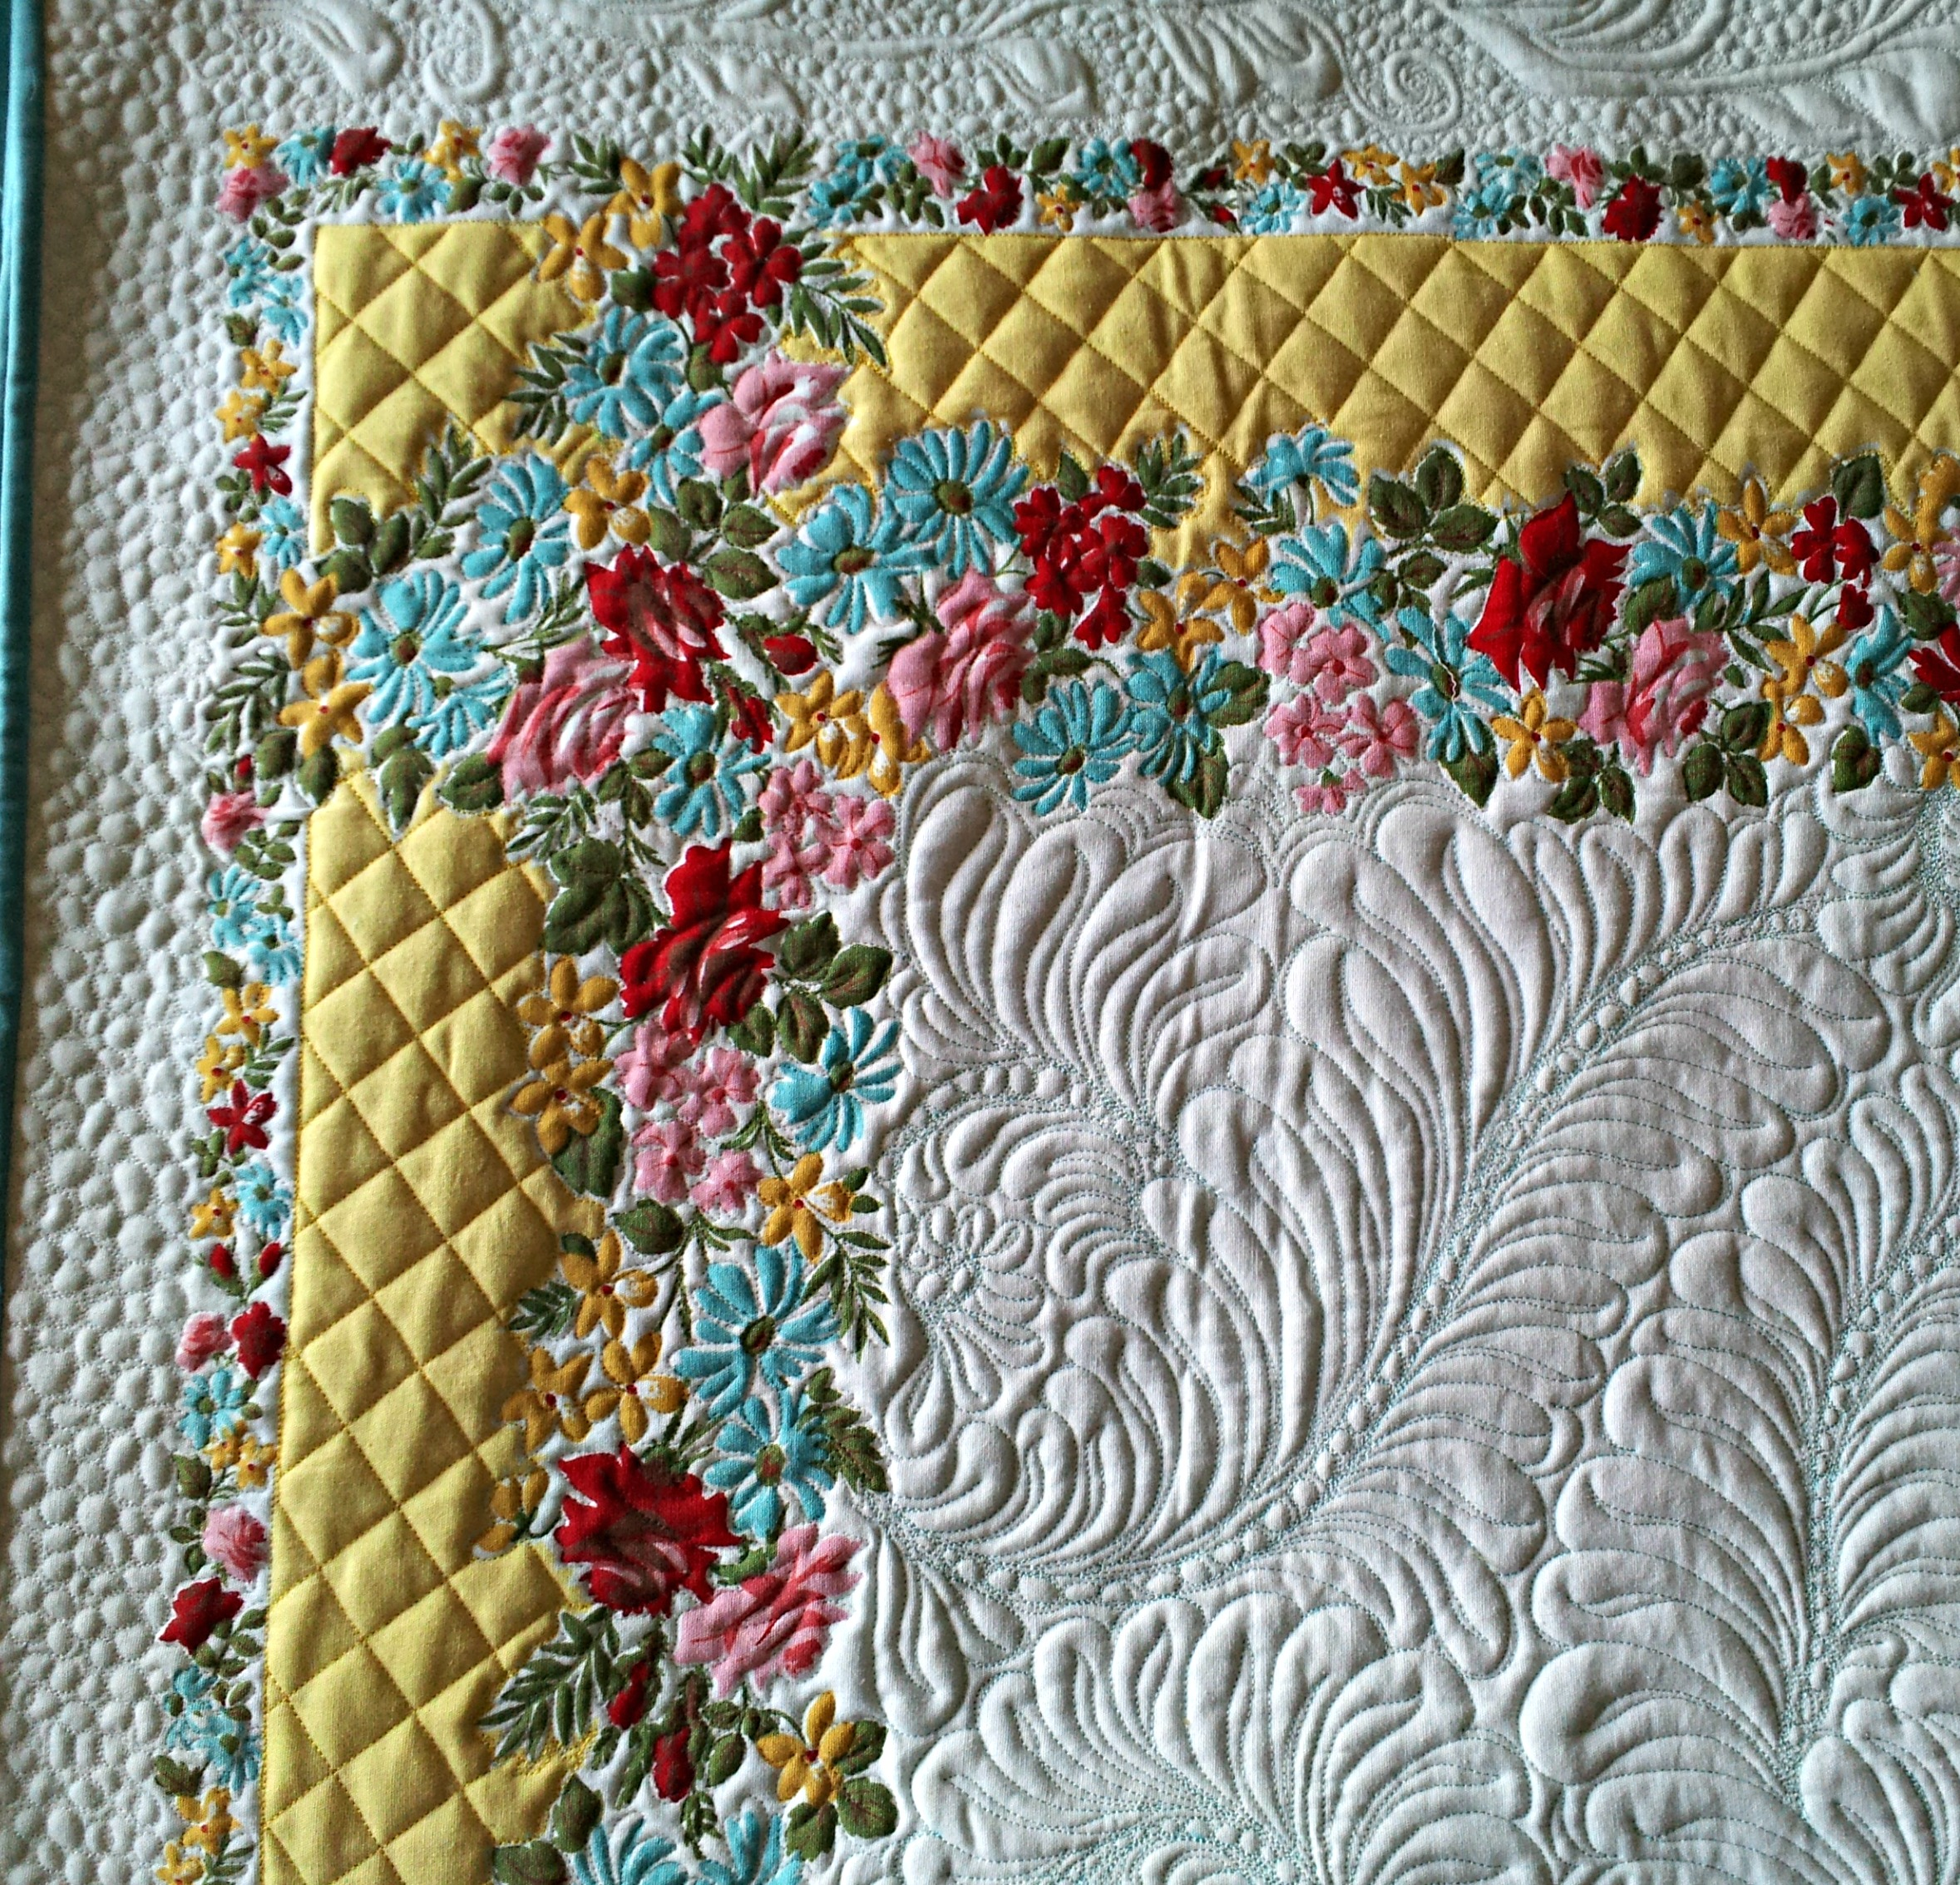 Bon Vintage Tablecloth I Free Handed With Long Armed Quilt. I Entered This In  The Coshocton